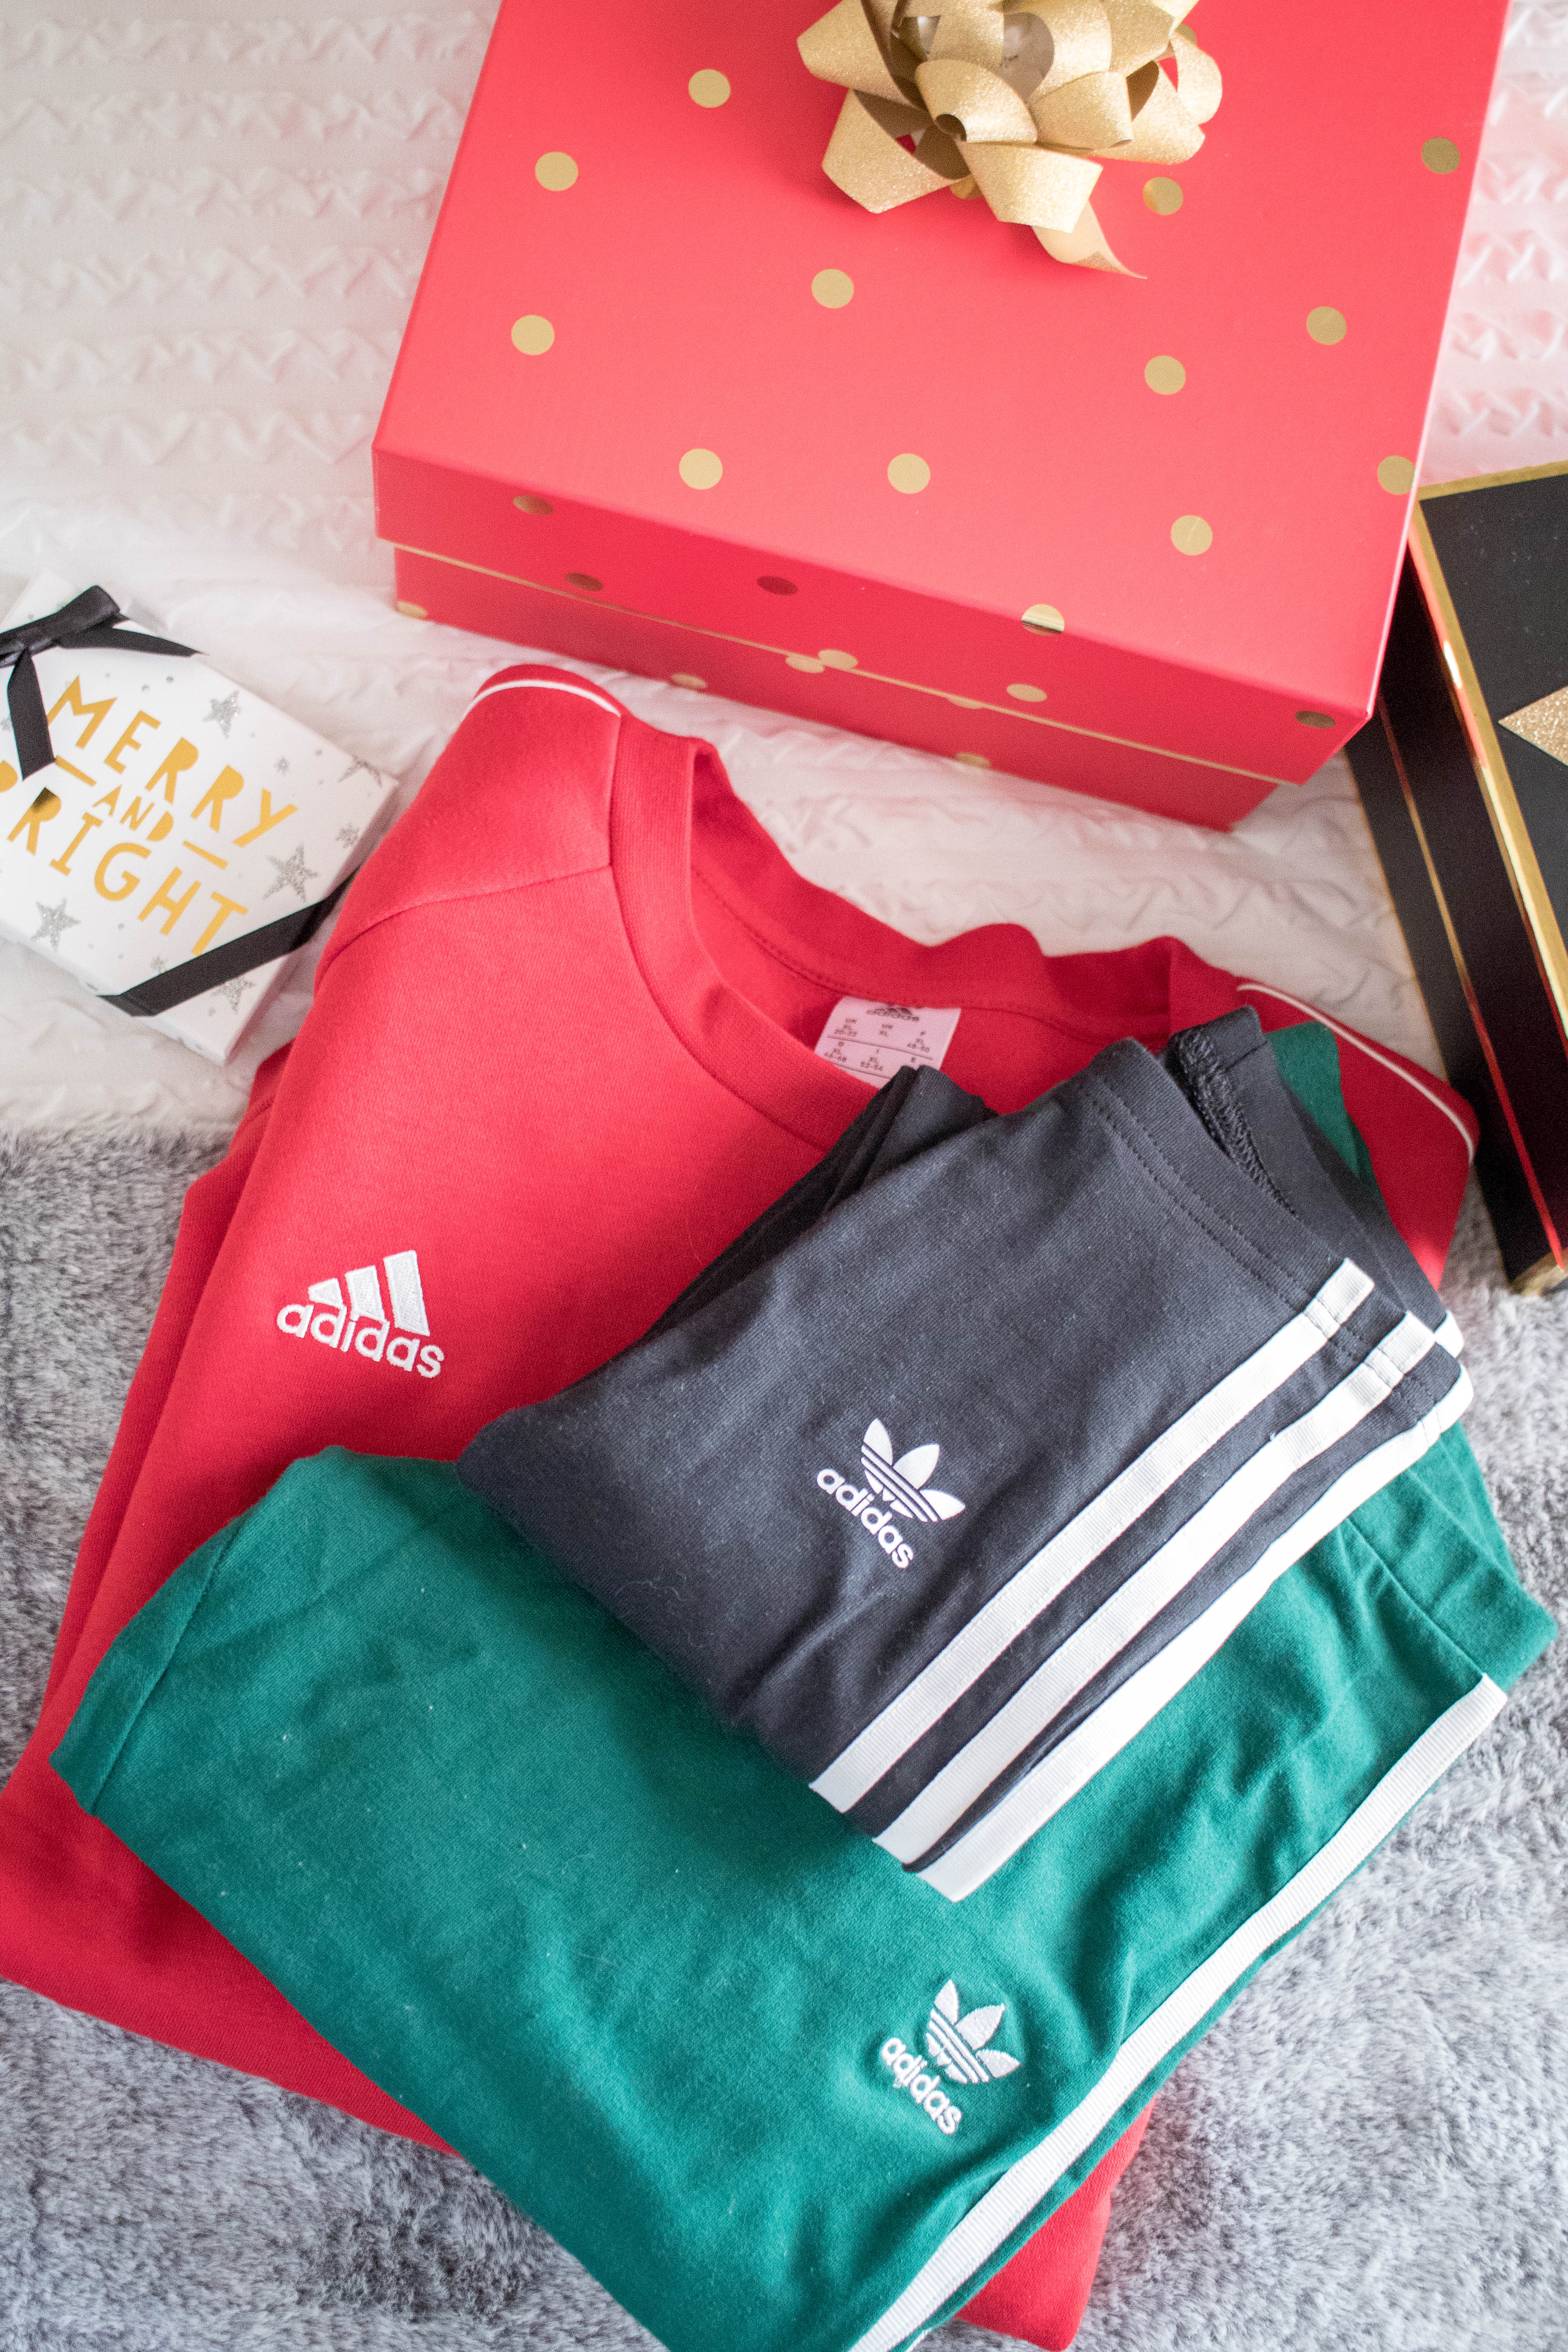 getting ready for the hoildays with adidas #holidaystyle #Adidas #christmas